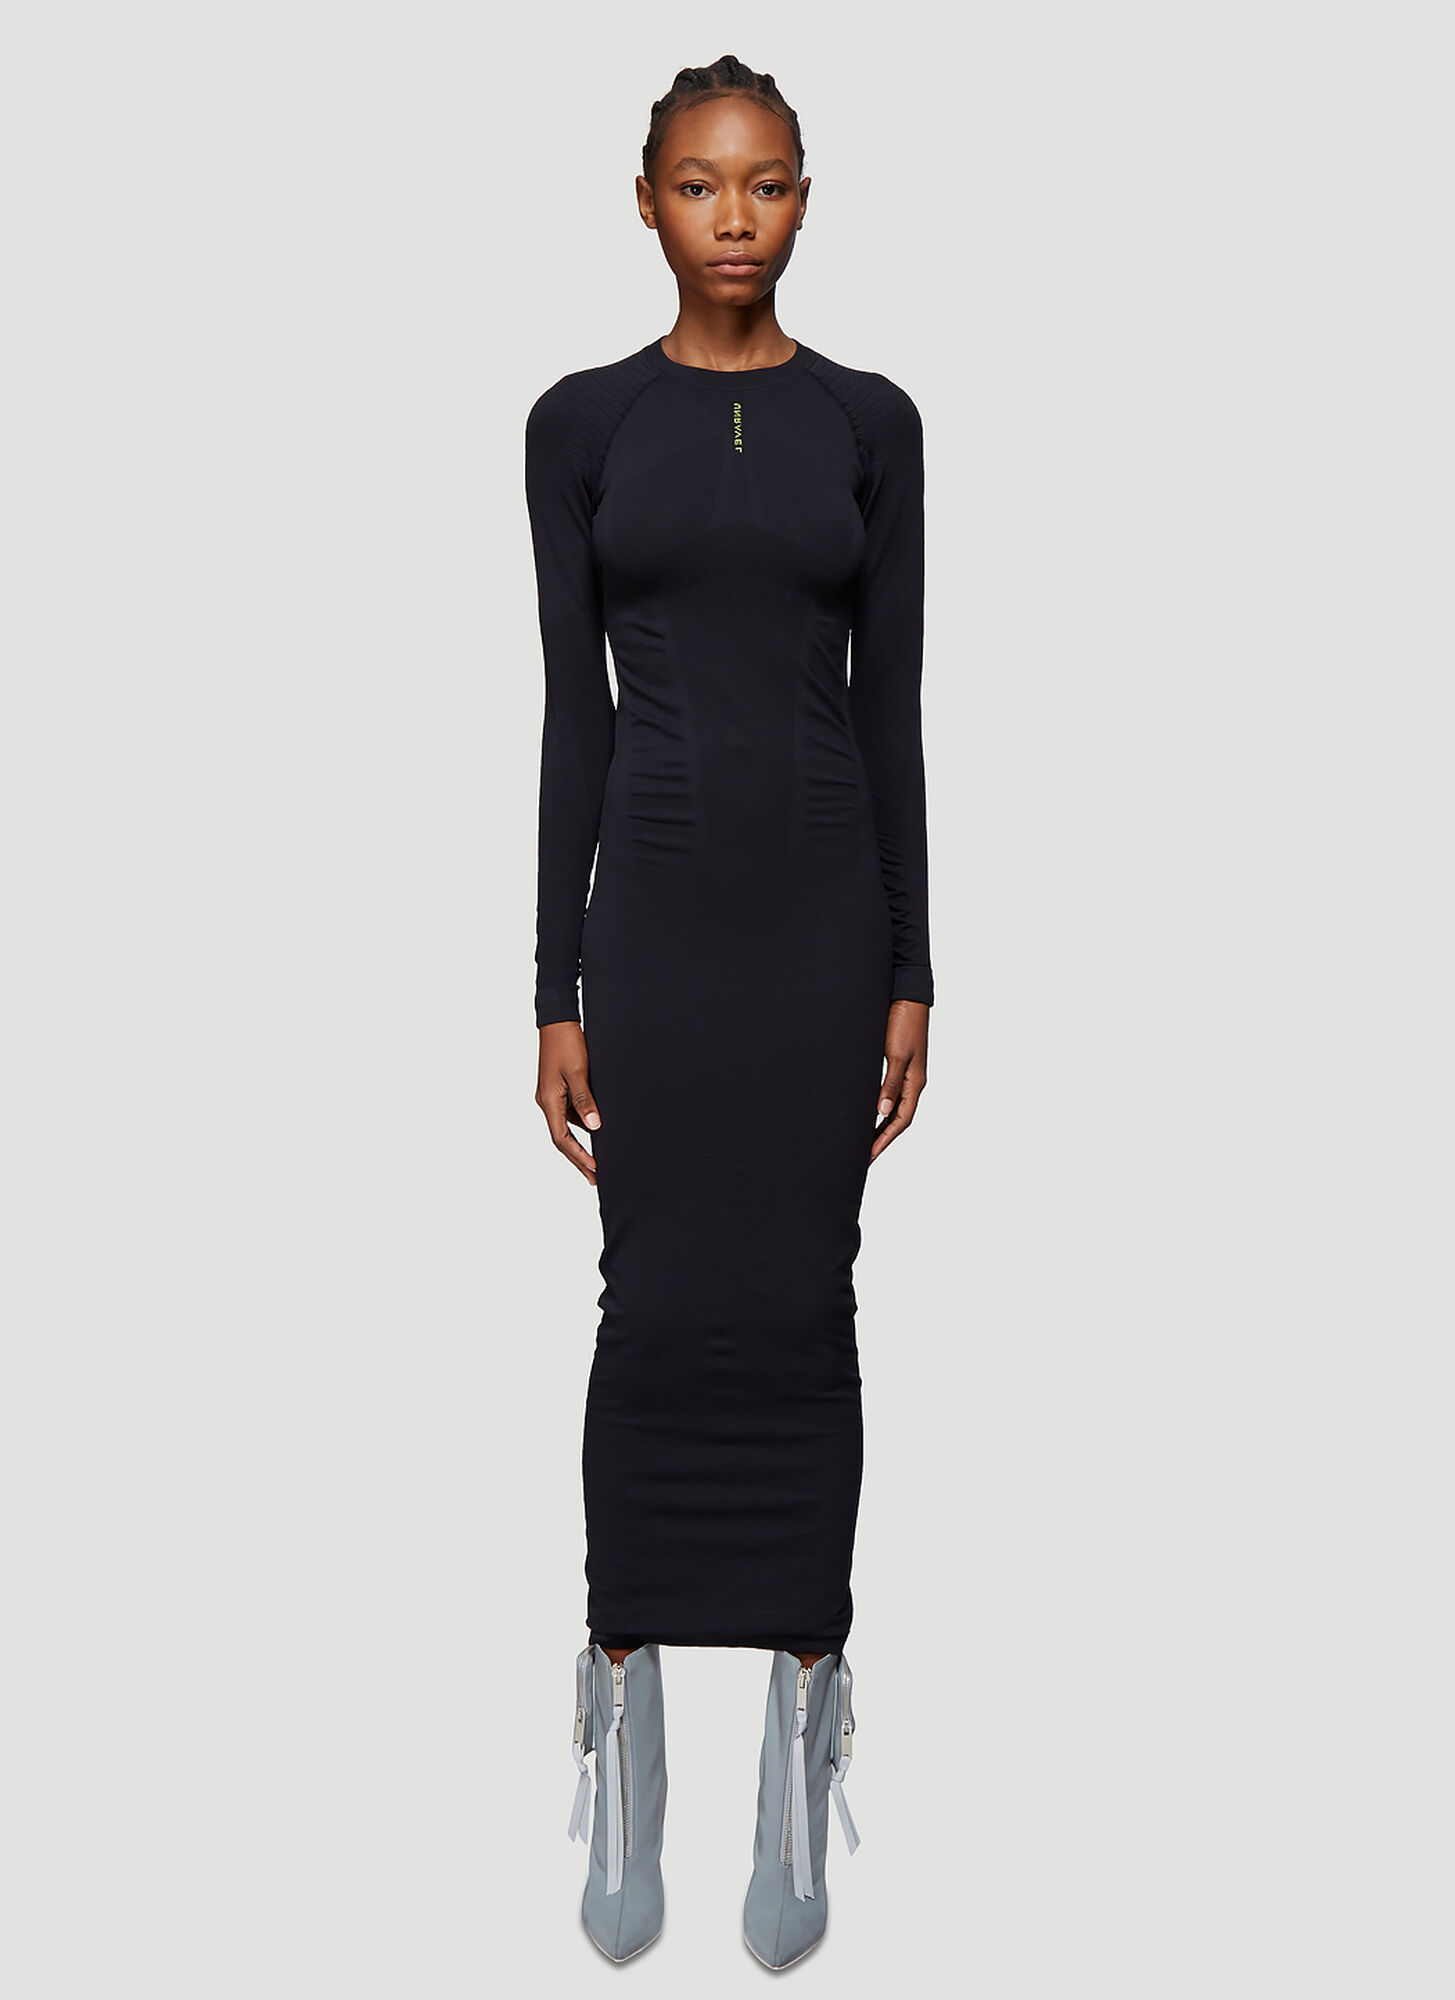 Unravel Project Long Tech Seamless Dress in Black